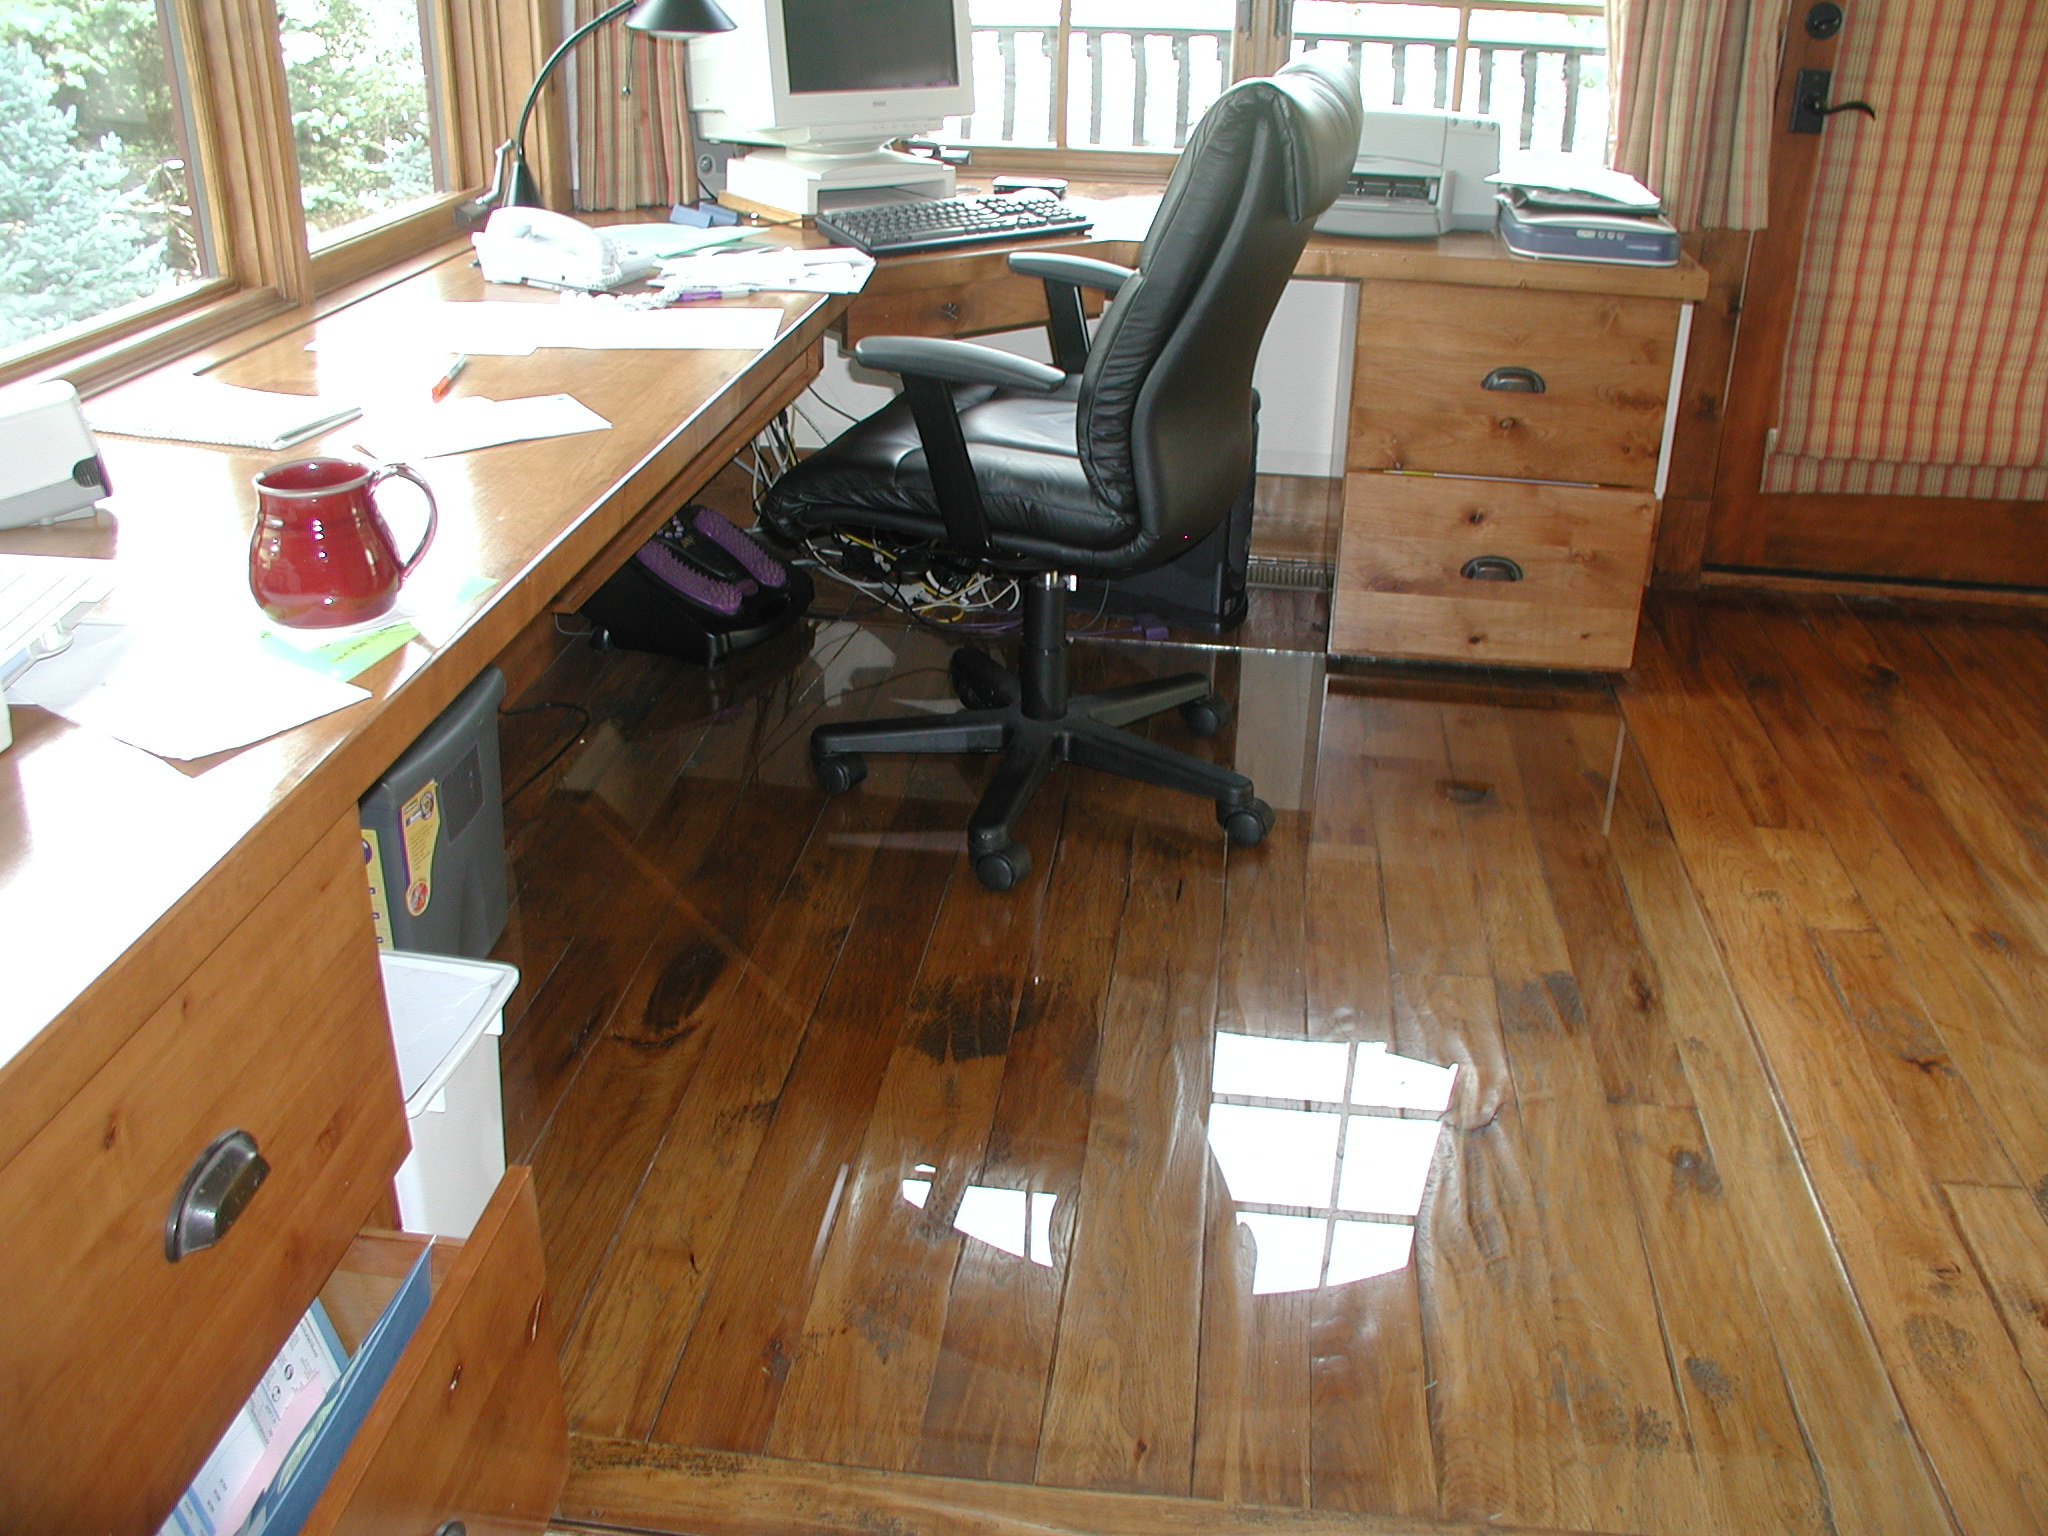 chair mat work on hard floors and cement floors yes our glass chair